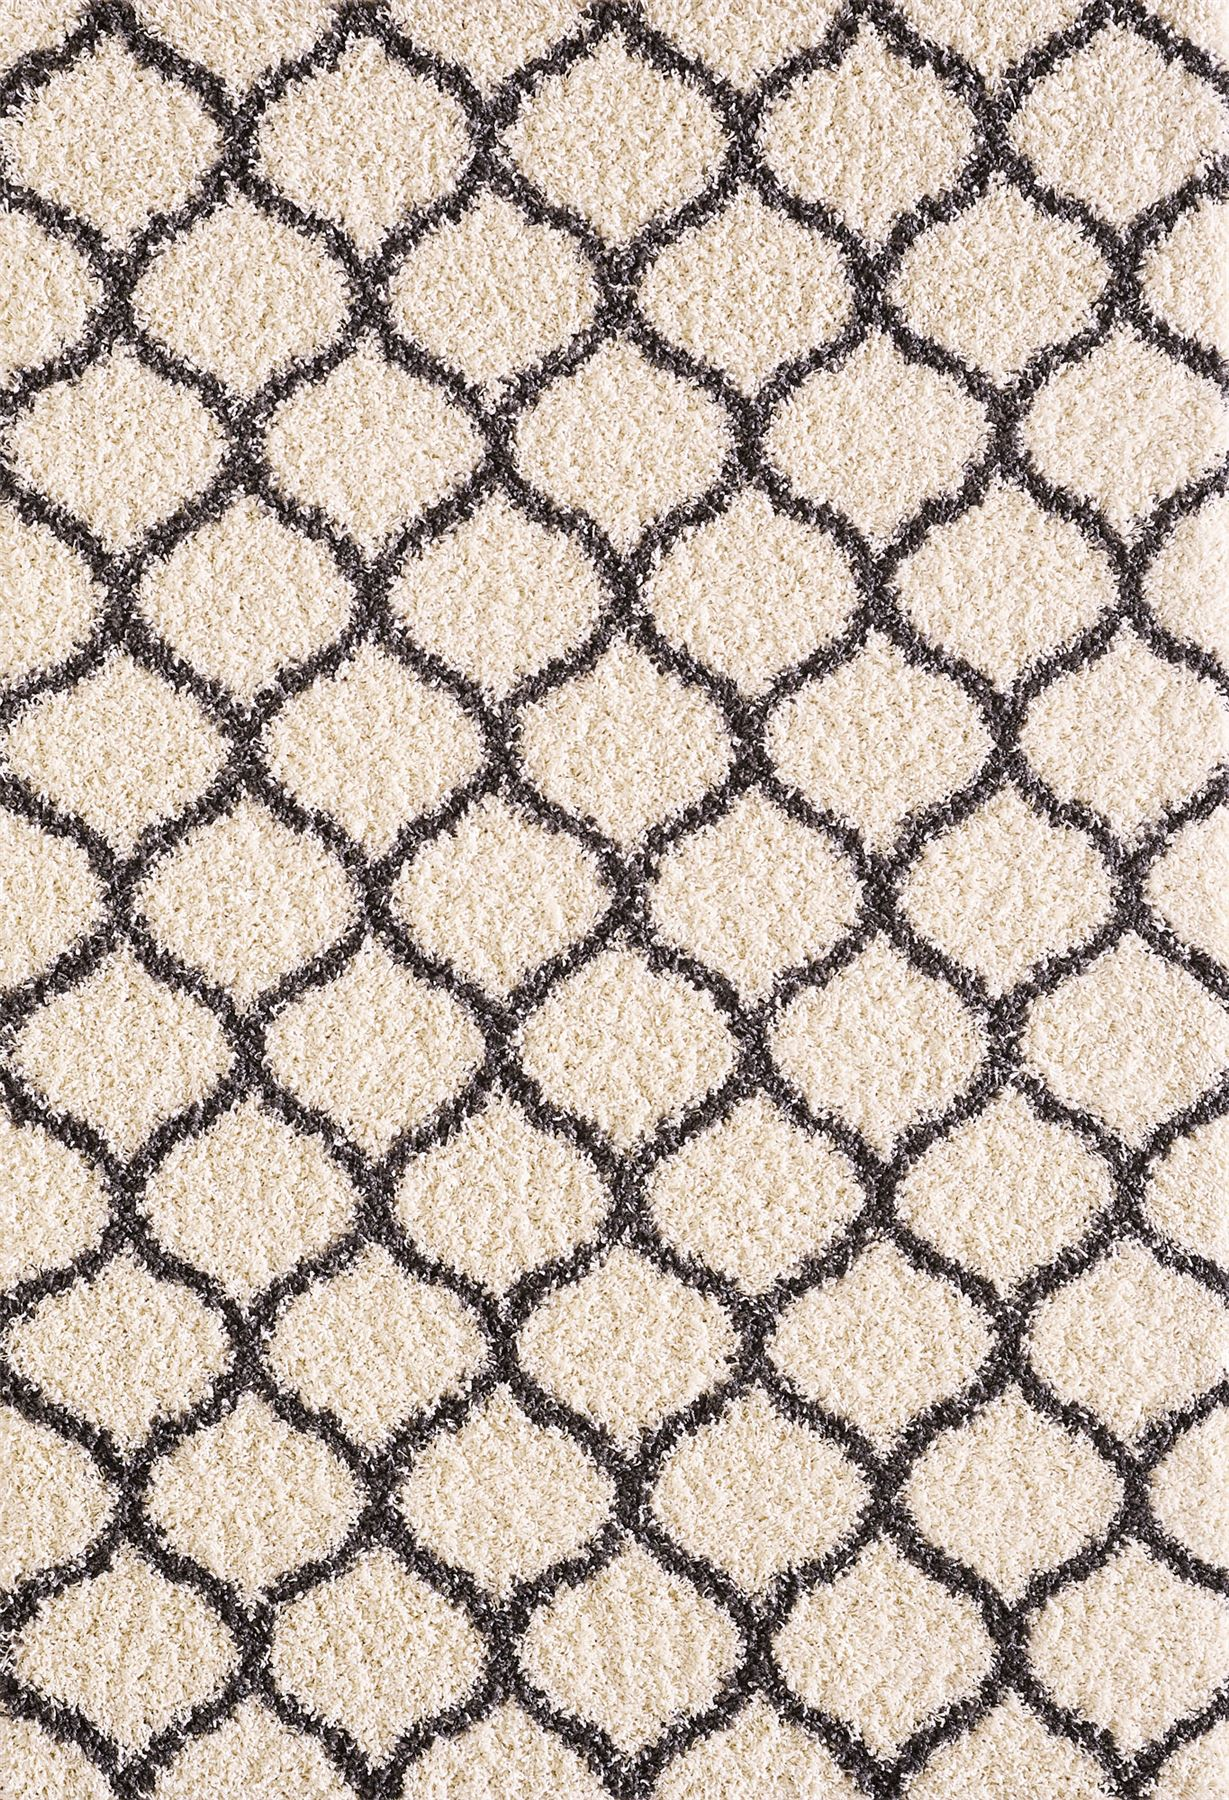 Dense-Pile-Trellis-Bedroom-Carpets-Thick-Shaggy-Rugs-Modern-Coloured-Pattern-Mat thumbnail 15